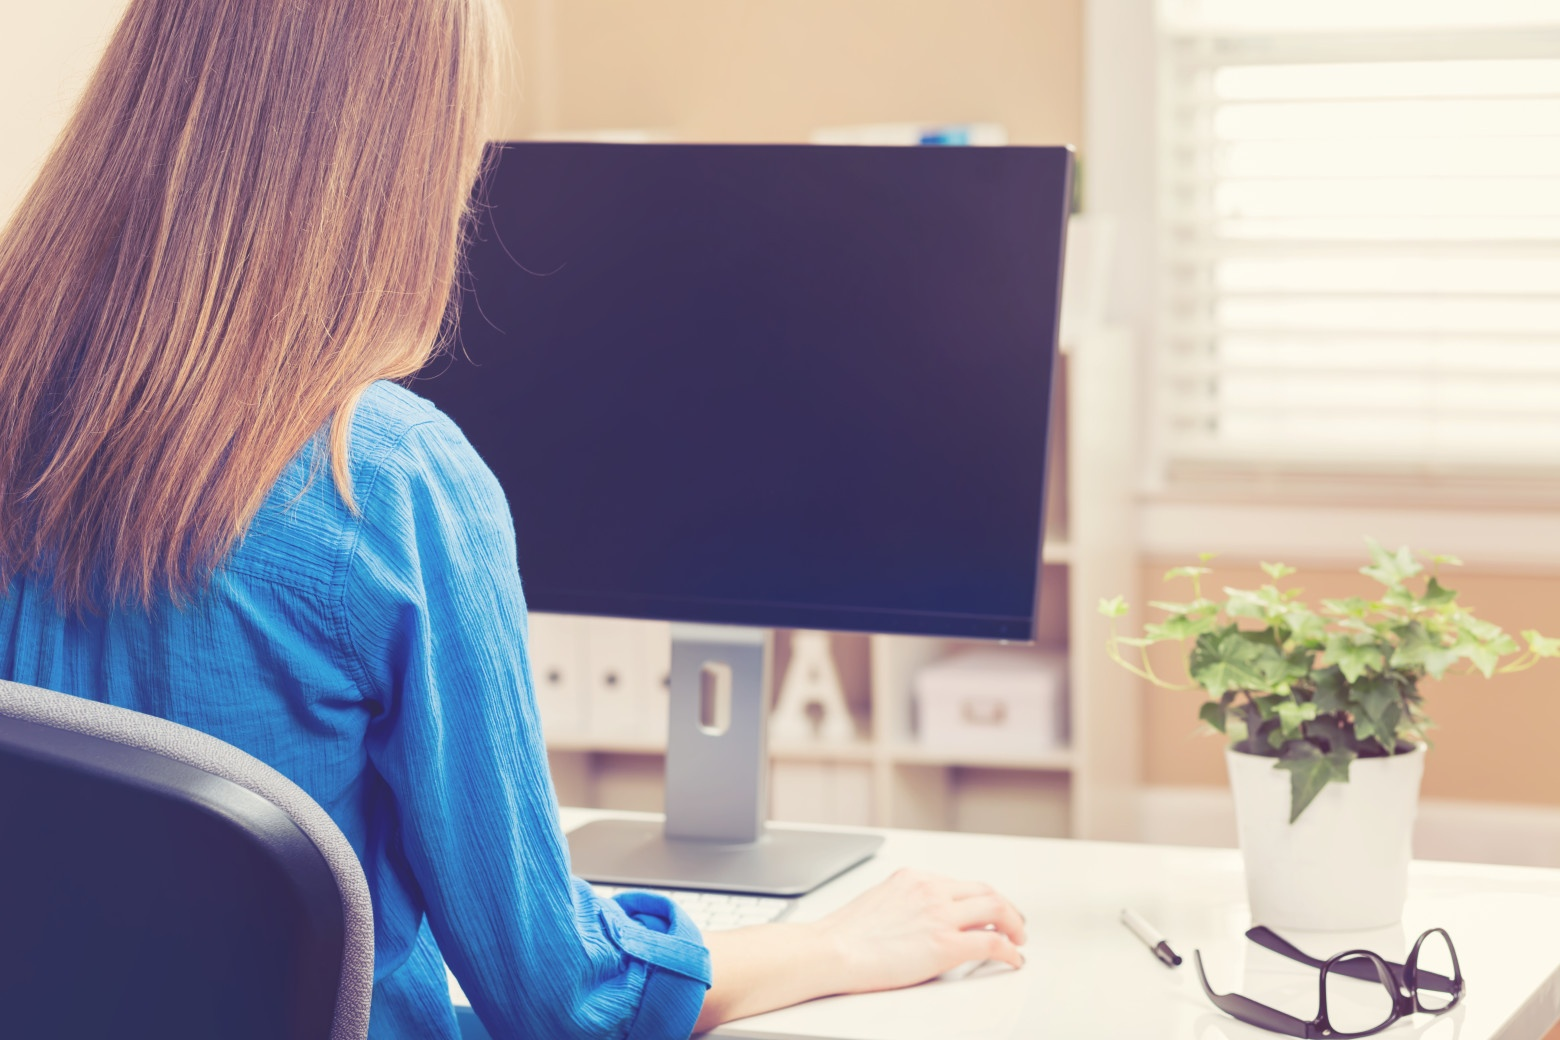 Looking over the shoulder of a young woman using her computer in her home office